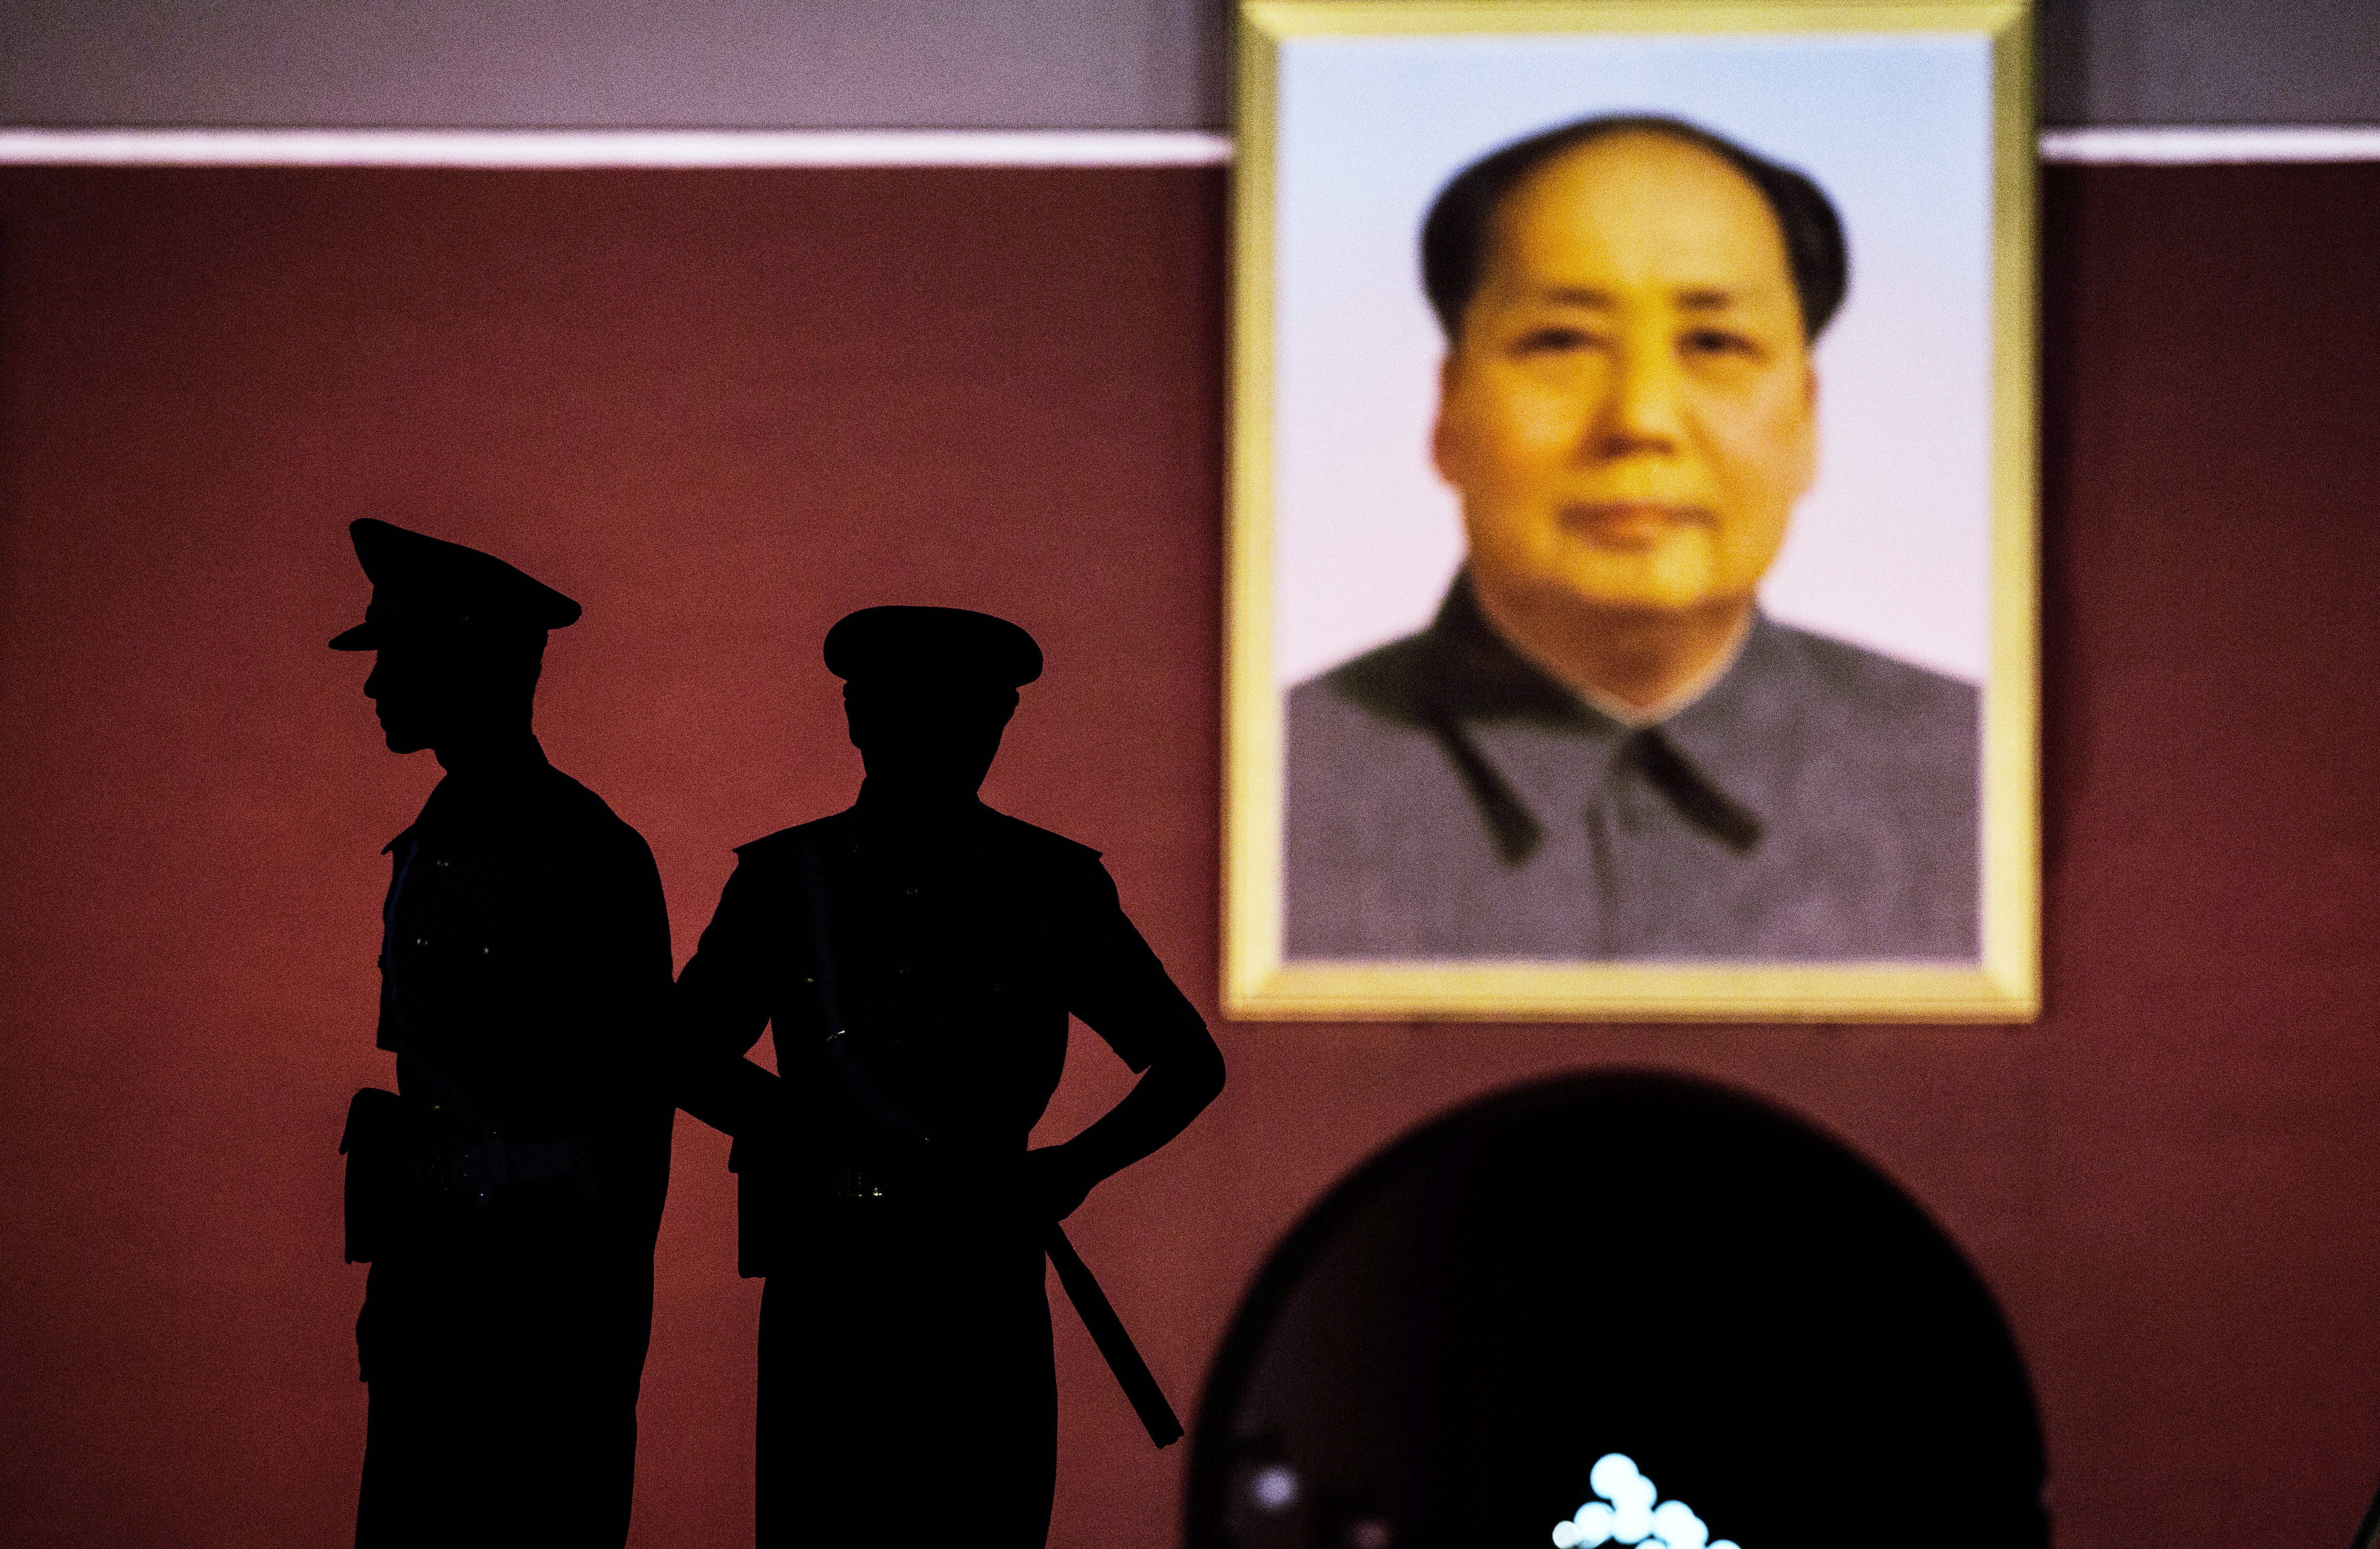 Chinese Paramilitary security force officers stand under a portrait of the late Mao Zedong outside the Forbidden City at Tiananmen Square on June 2, 2014 in Beijing, China.